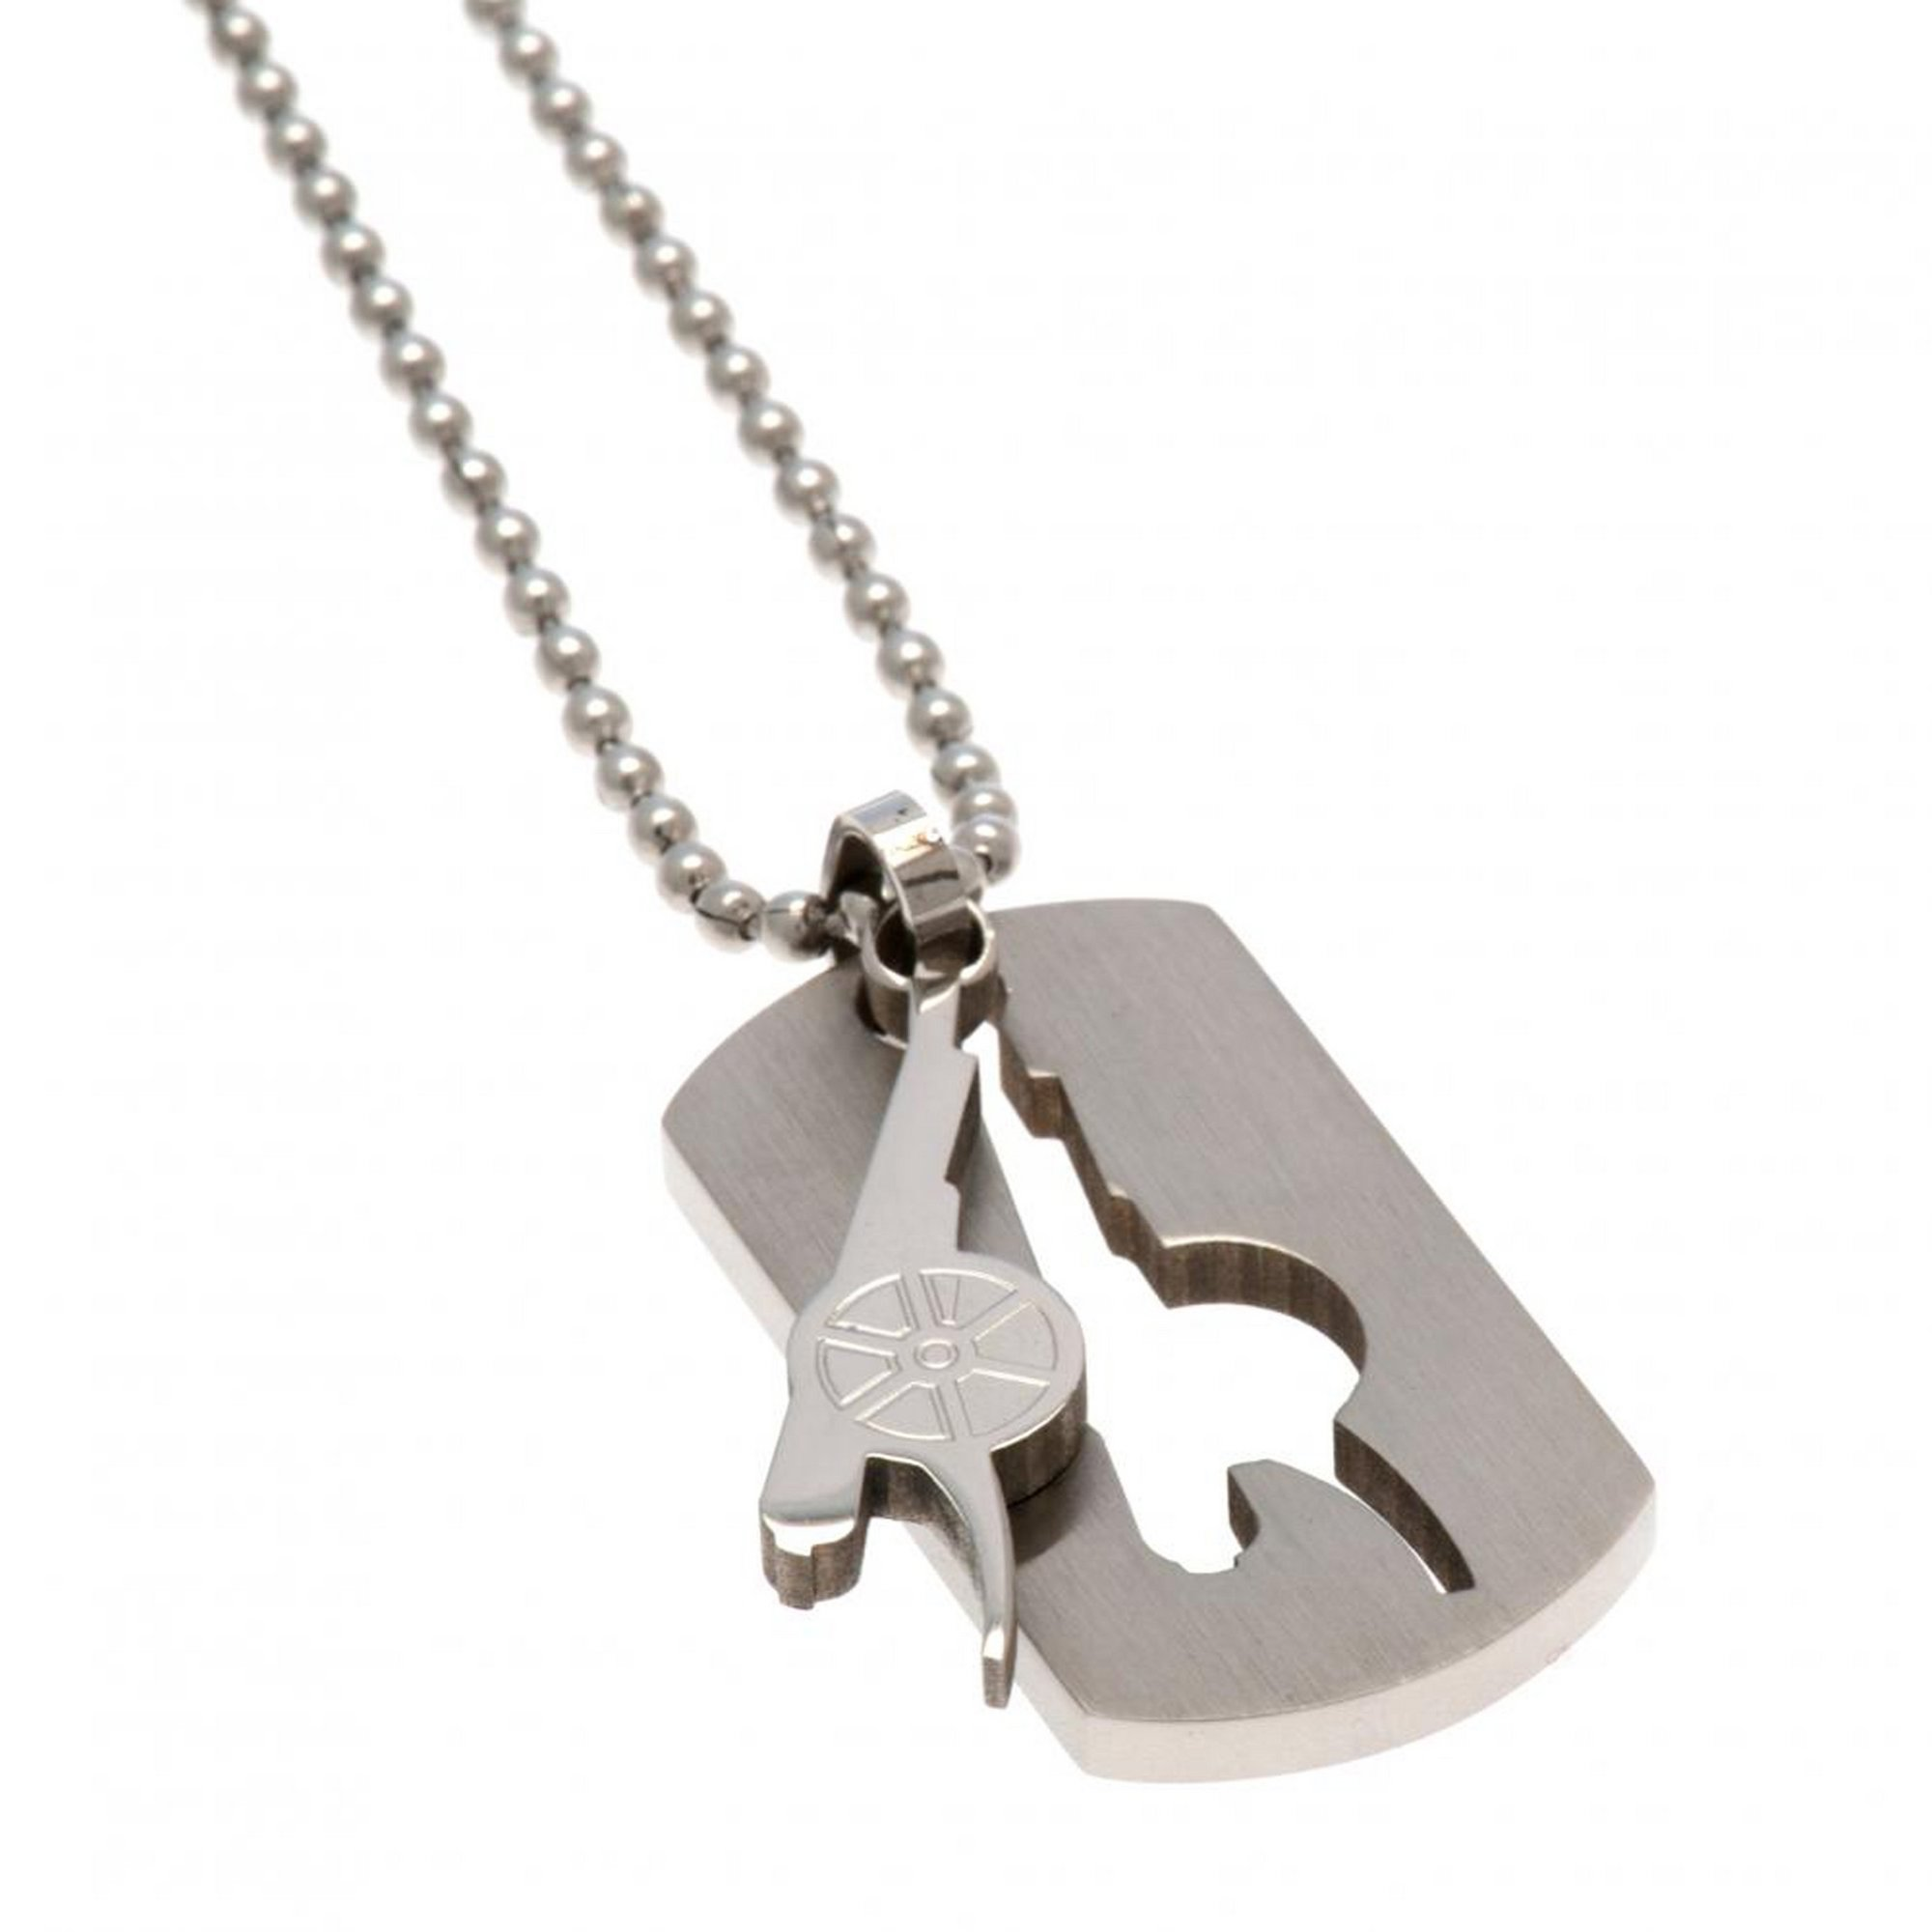 Image of Arsenal FC Stainless Steel Crest Cut Out Dog Tag